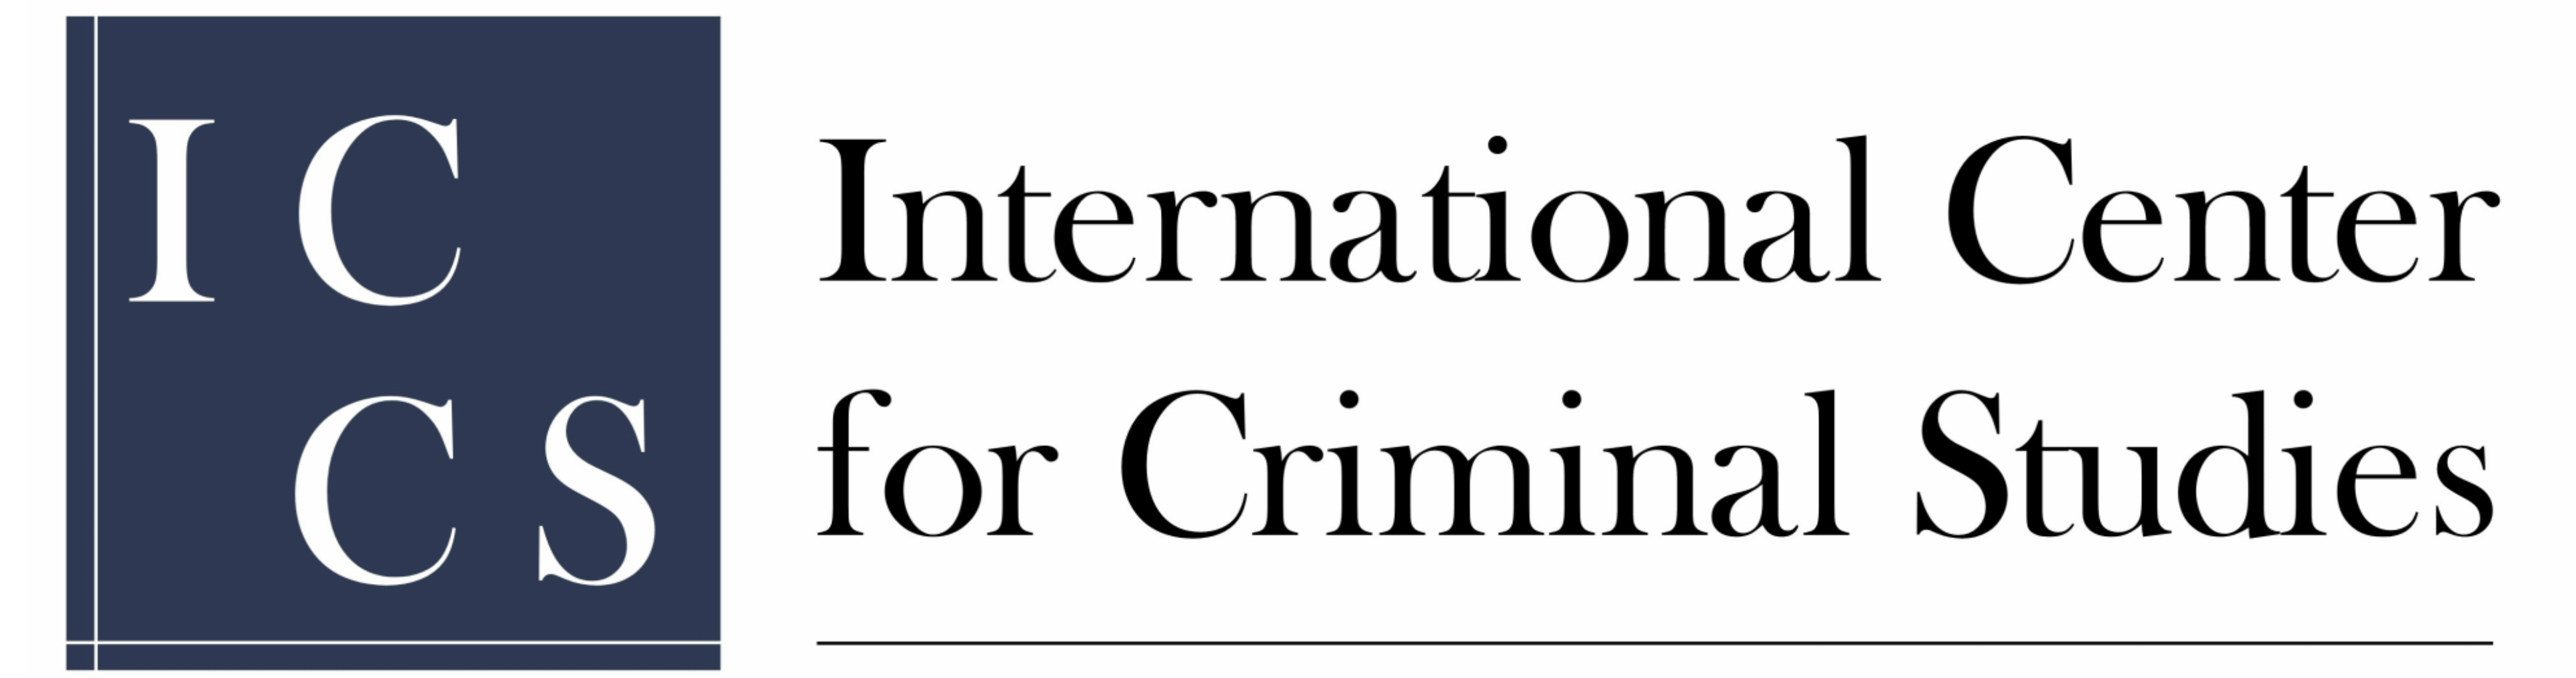 International Center for Criminal Studies